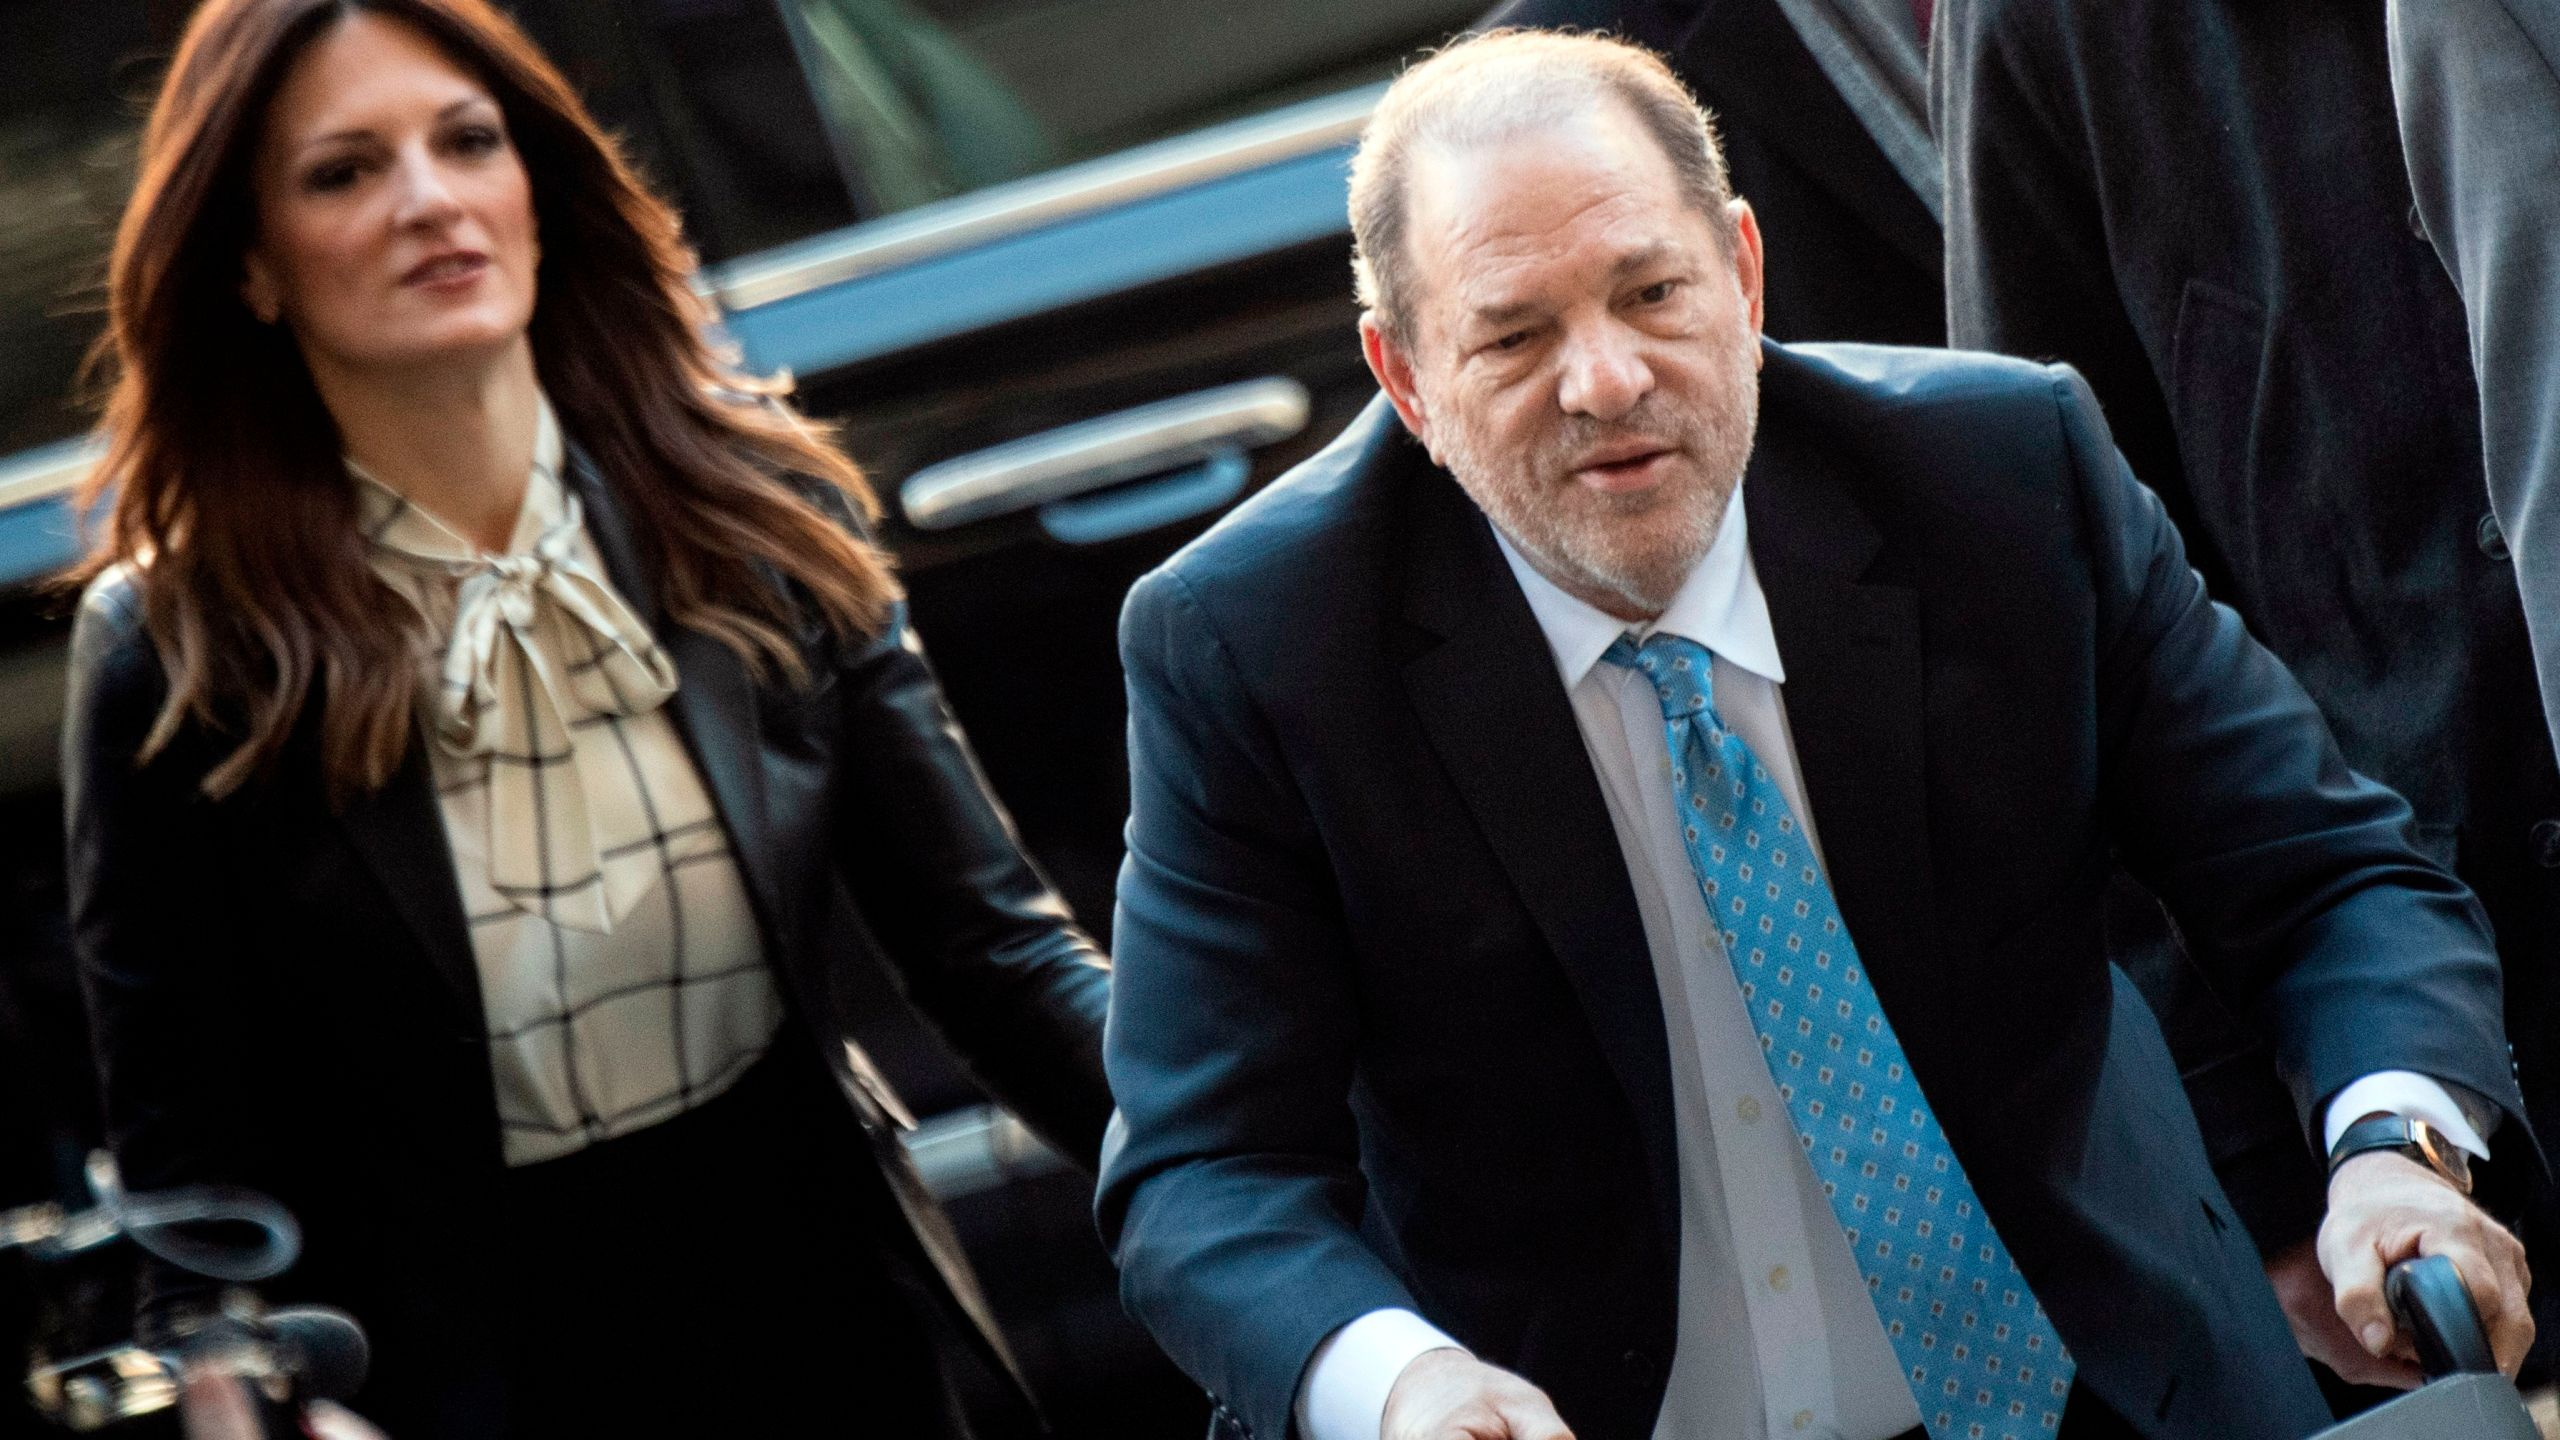 Harvey Weinstein arrives at the Manhattan Criminal Court, on Feb. 24, 2020, in New York City. (JOHANNES EISELE/AFP via Getty Images)